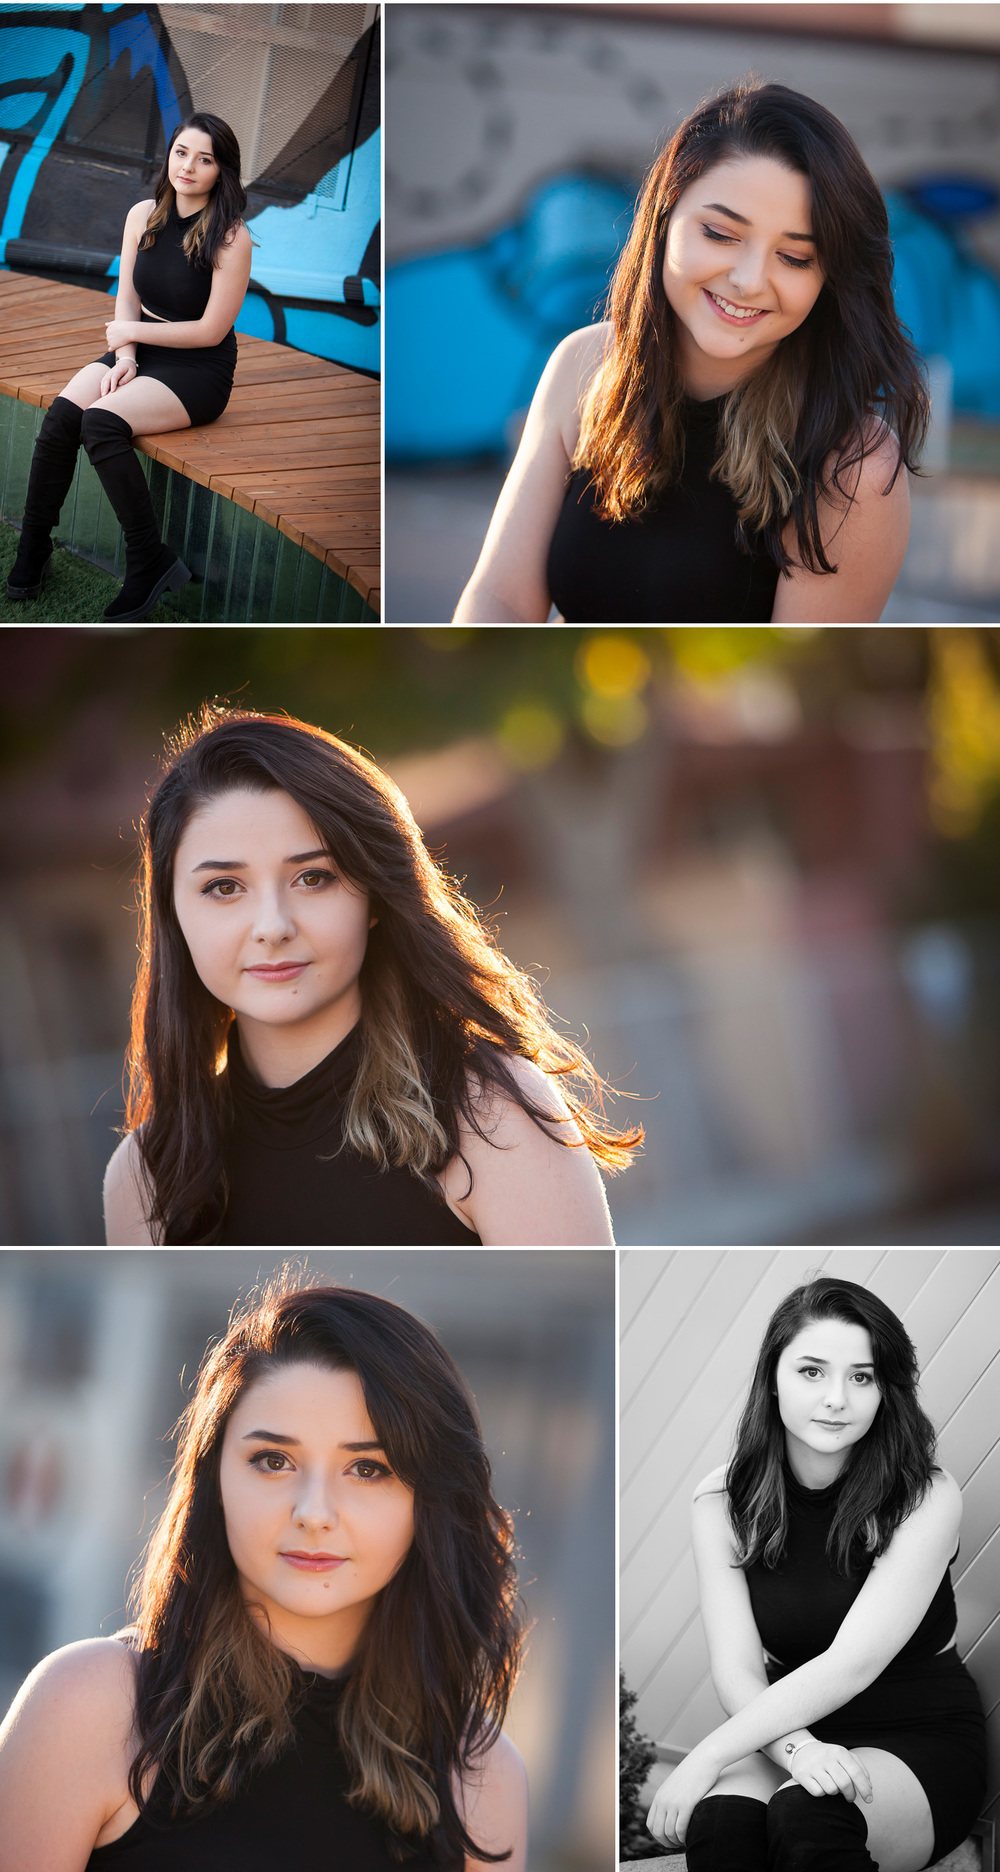 Light filled Senior Portraits in the Santa Fe Arts District of Denver with photographer Jennifer Koskinen | Merritt Portrait Studio